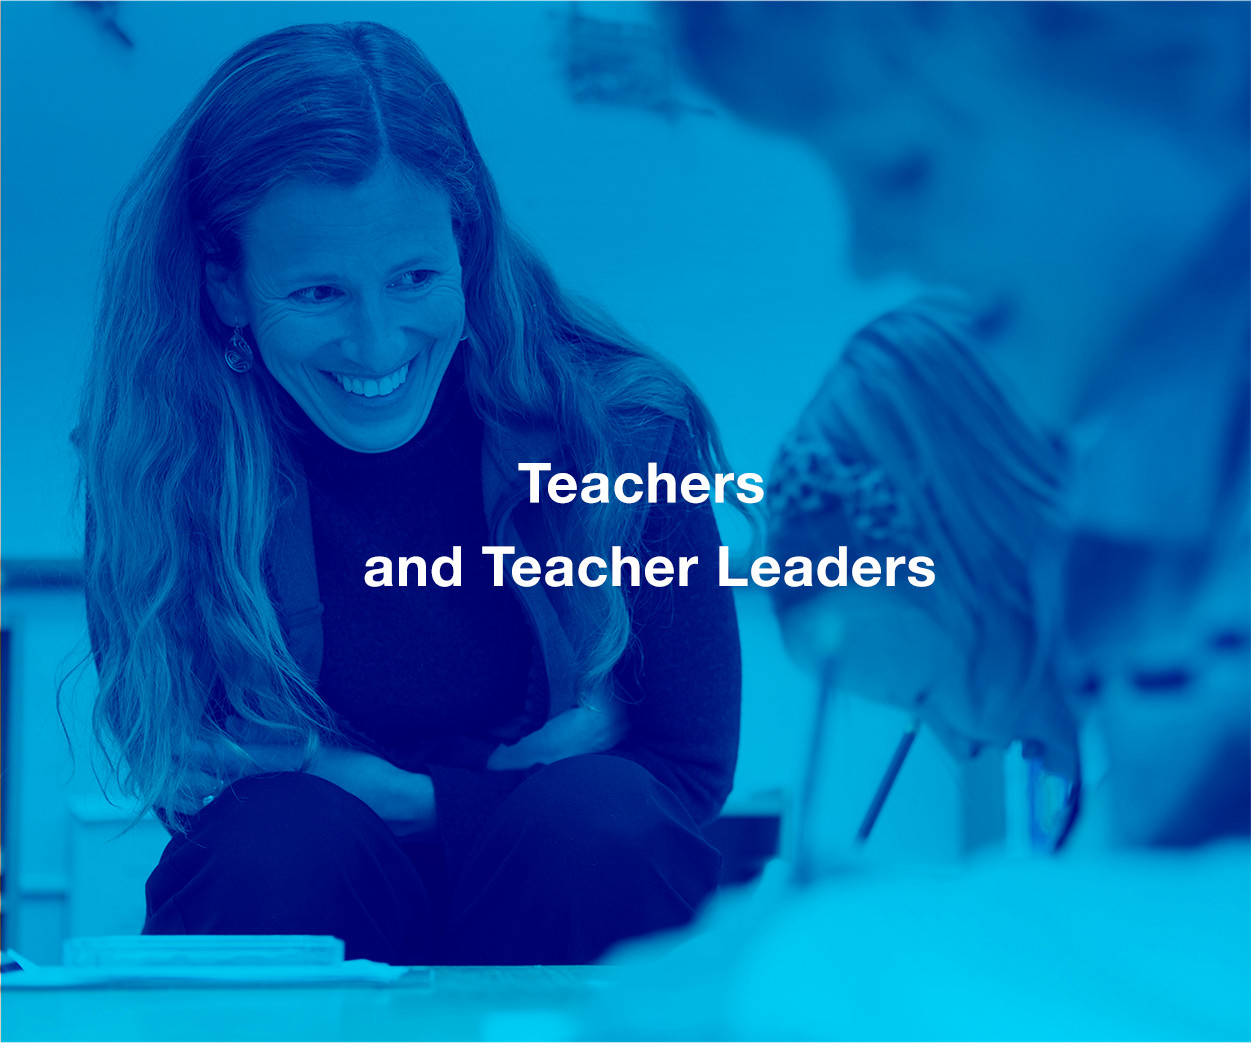 Teachers and Teacher Leaders